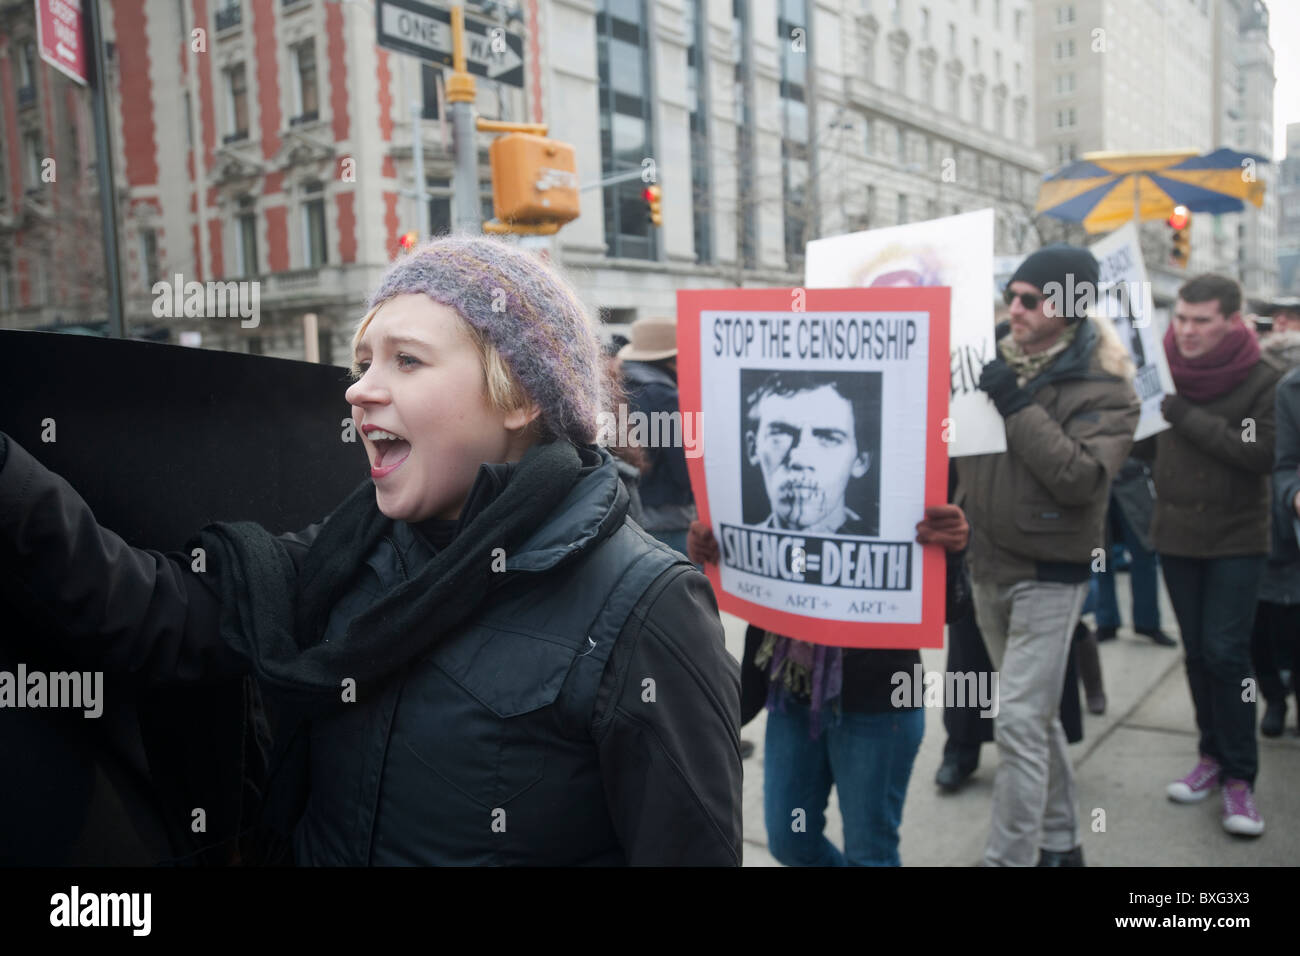 Protesters demonstrate in New York against the Smithsonian Museum censorship - Stock Image